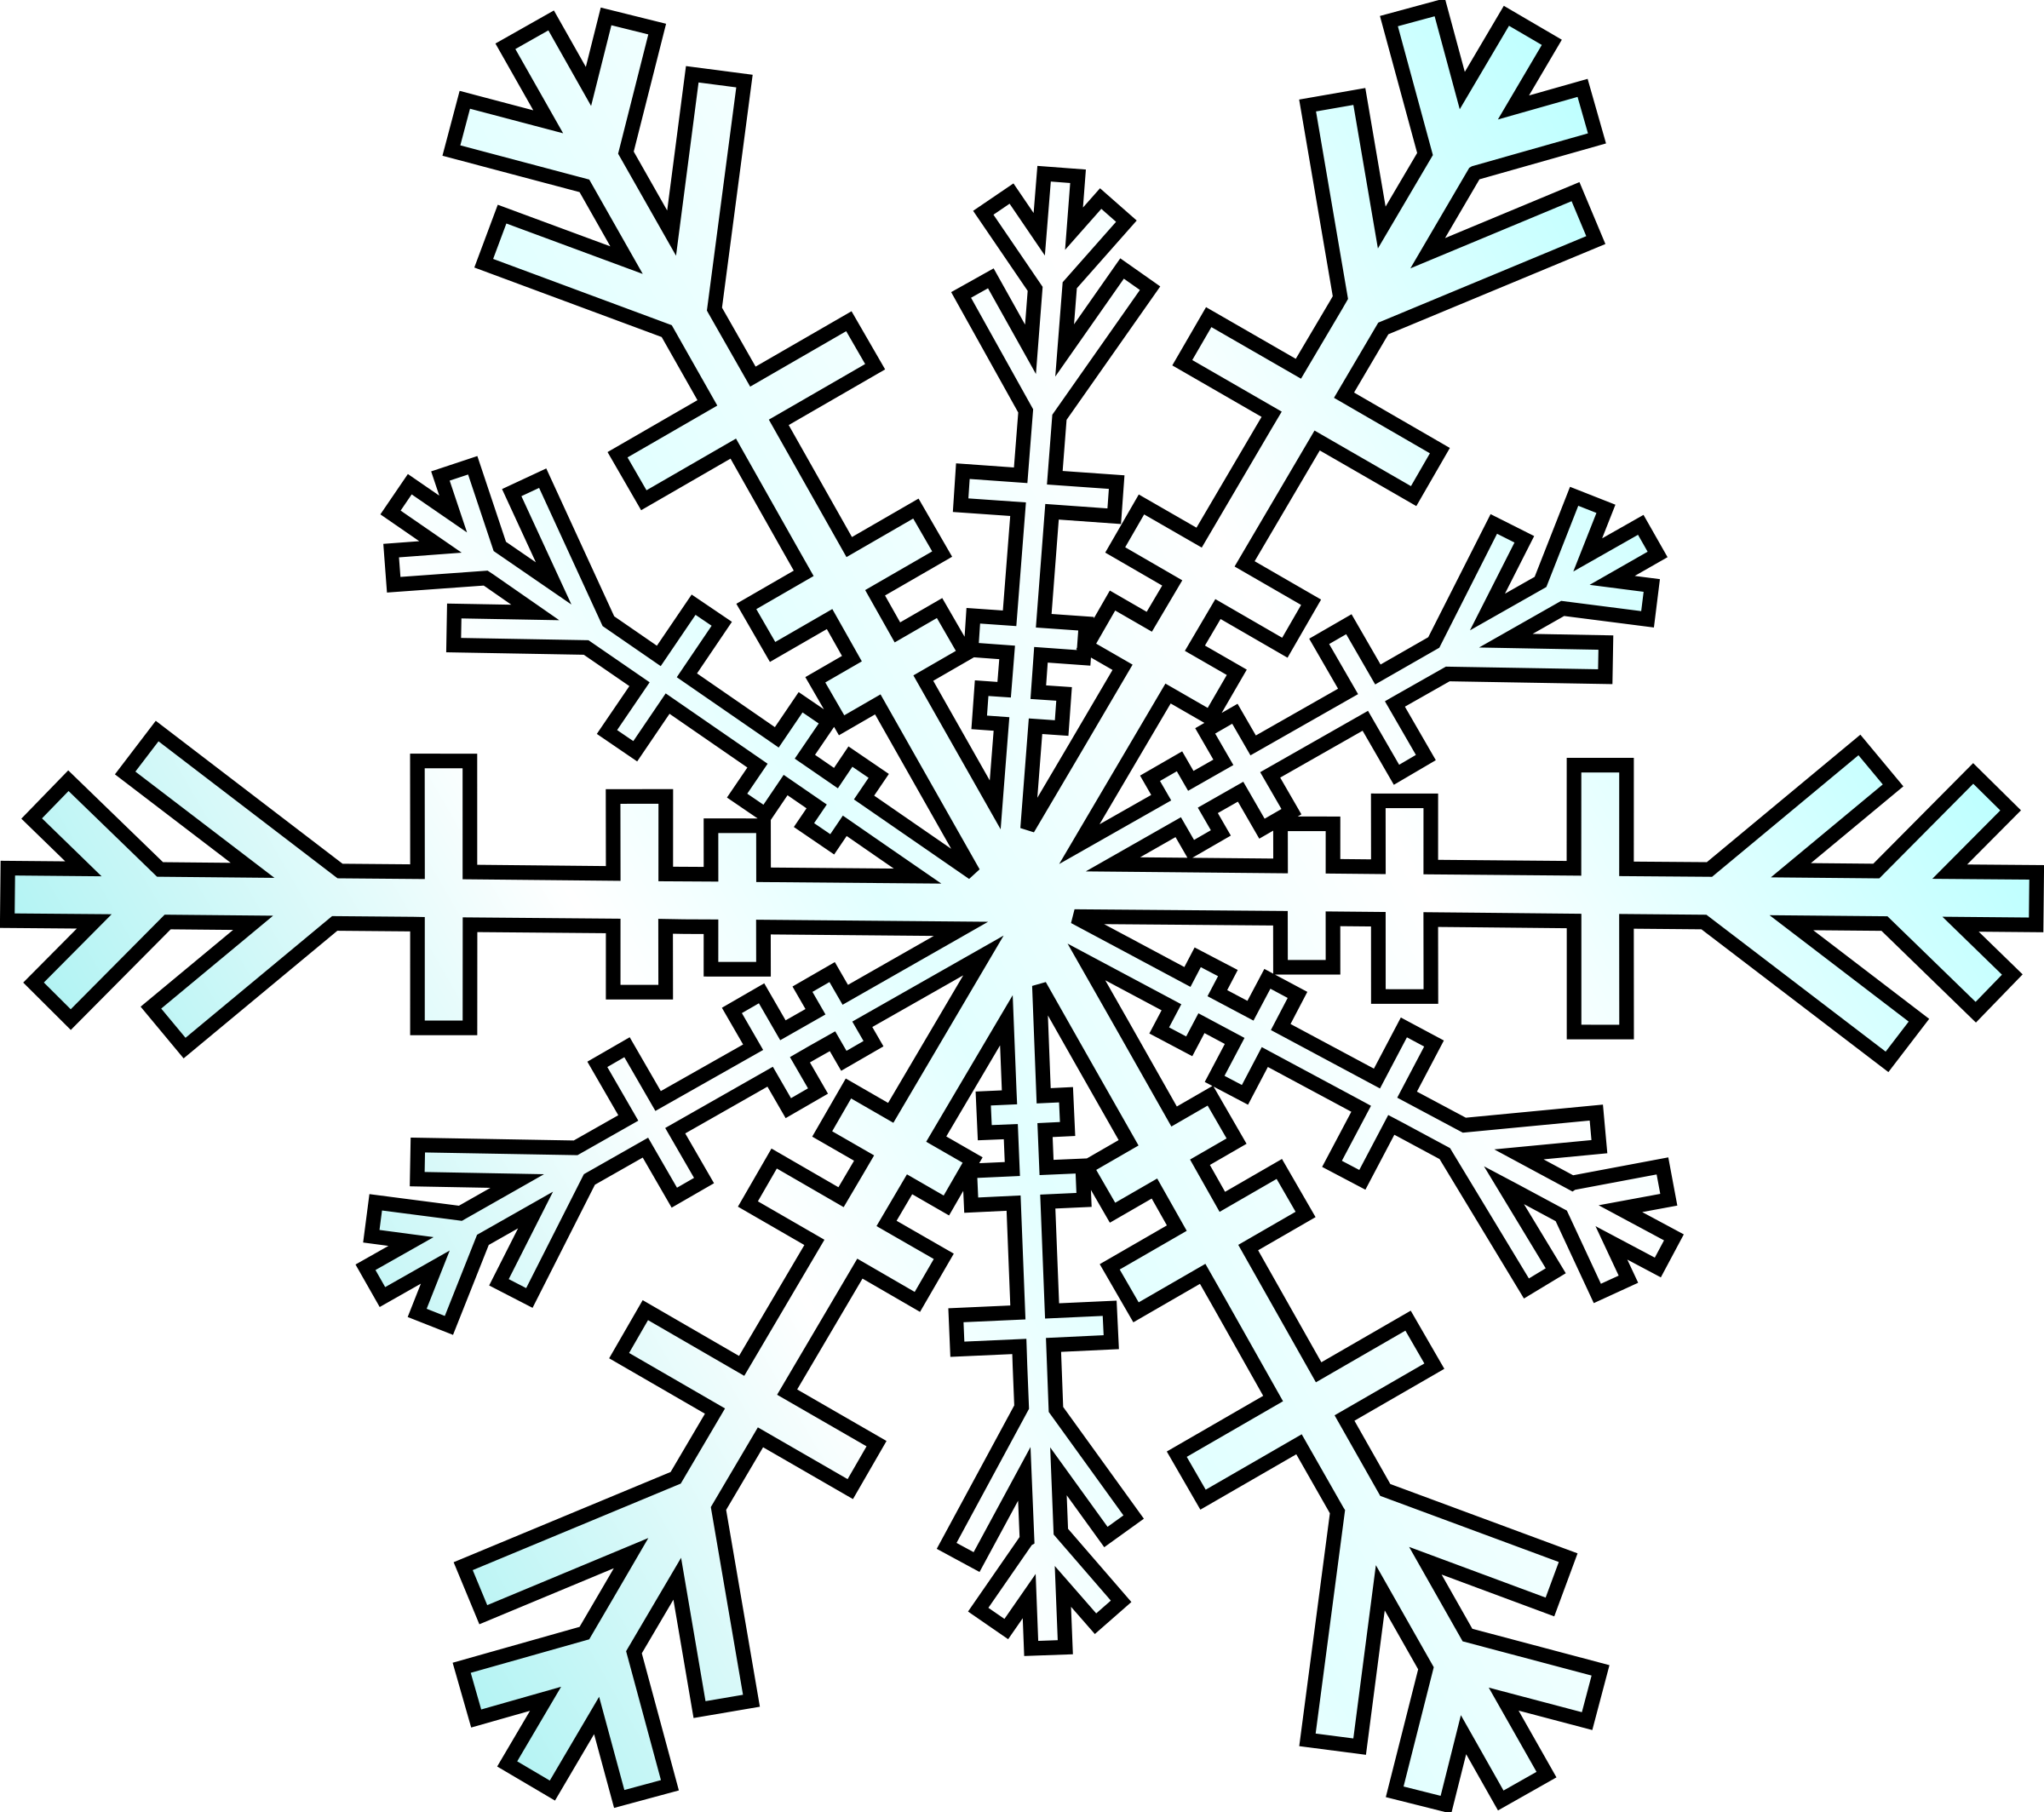 Microsoft office clipart snowflake royalty free download Snowflake Clipart Png | Free download best Snowflake Clipart Png on ... royalty free download